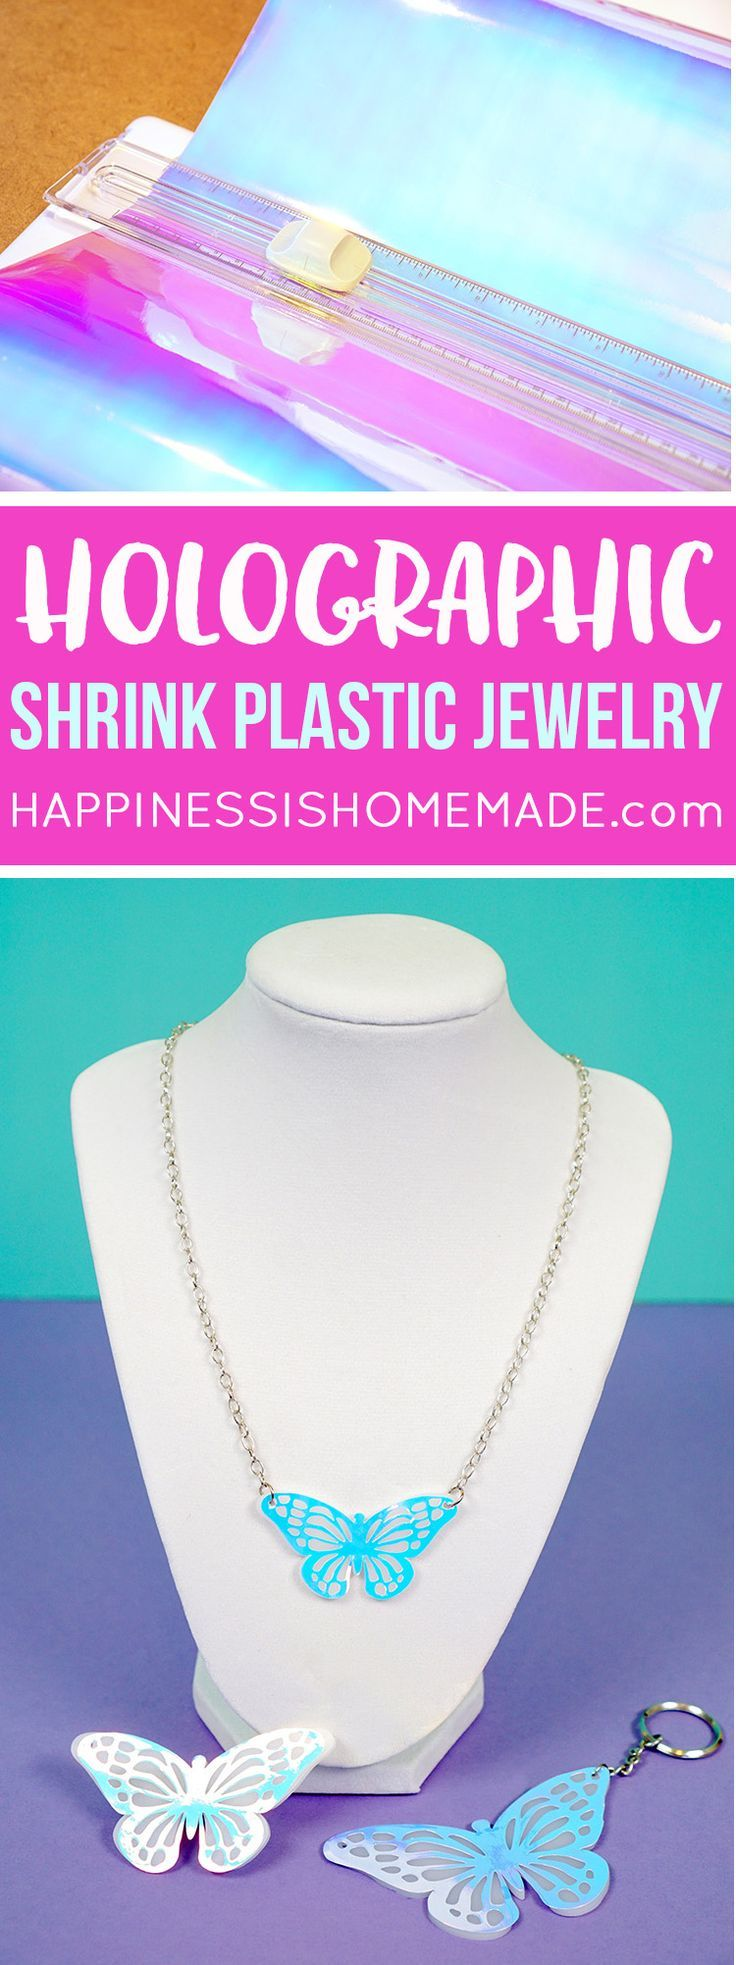 This fun Holographic Shrink Plastic Jewelry is a grown-up version of the classic Shrinky Dinks craft made easy with the Cricut Explore Air cutting machine! The possibilities are endless! via @hiHomemadeBlog #ad #CricutMade